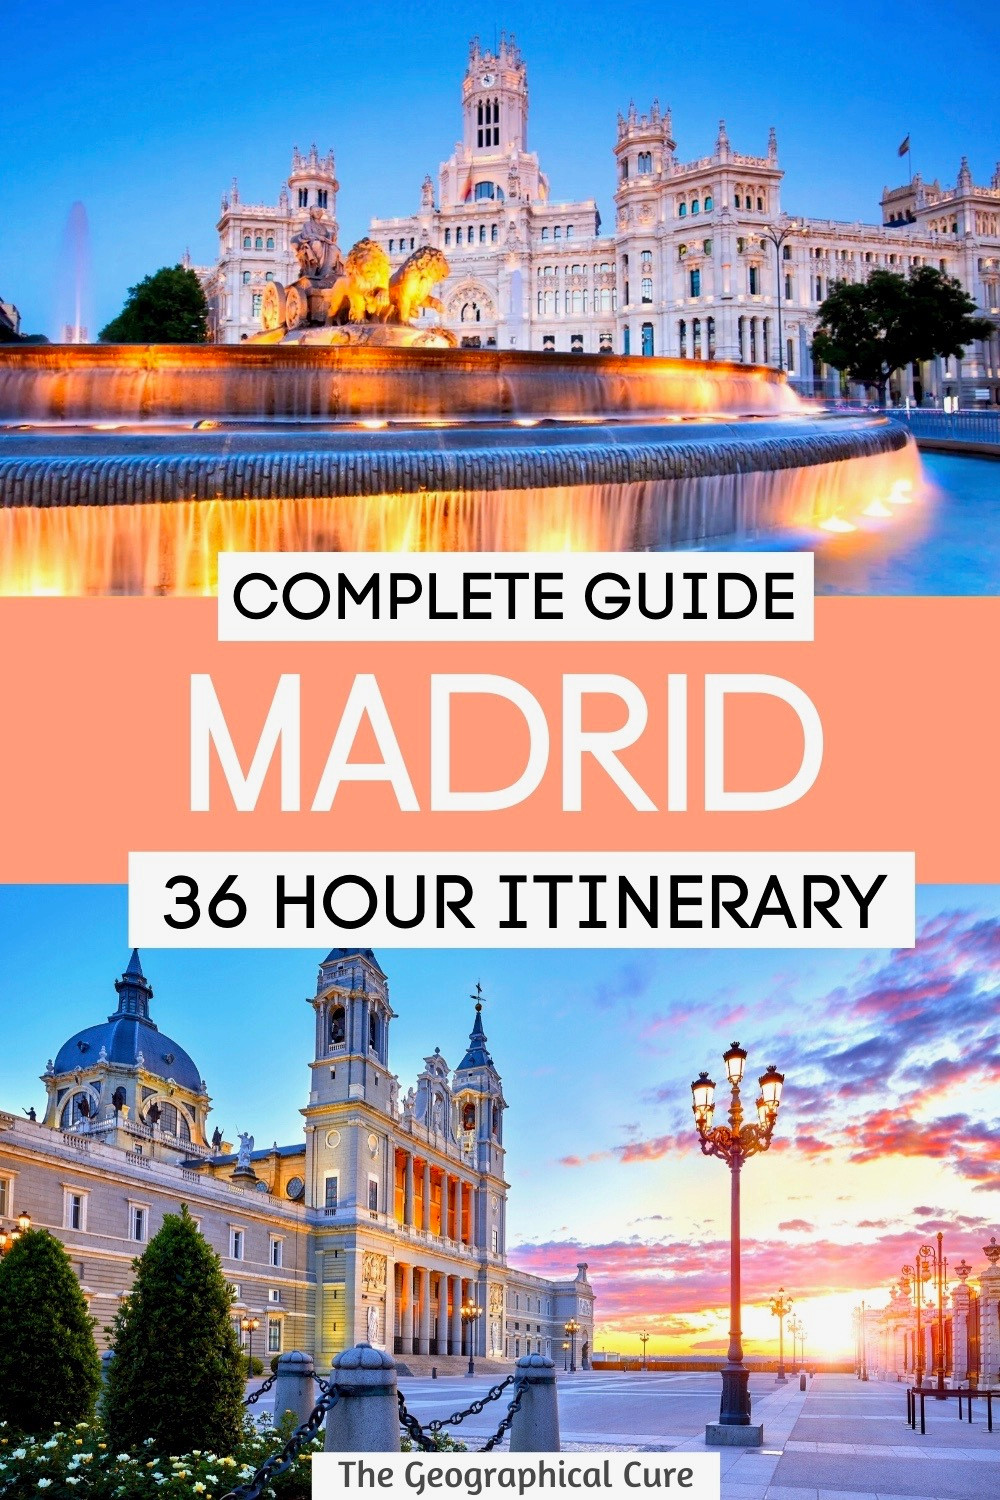 How To Spend 36 Hours in Madrid Spain